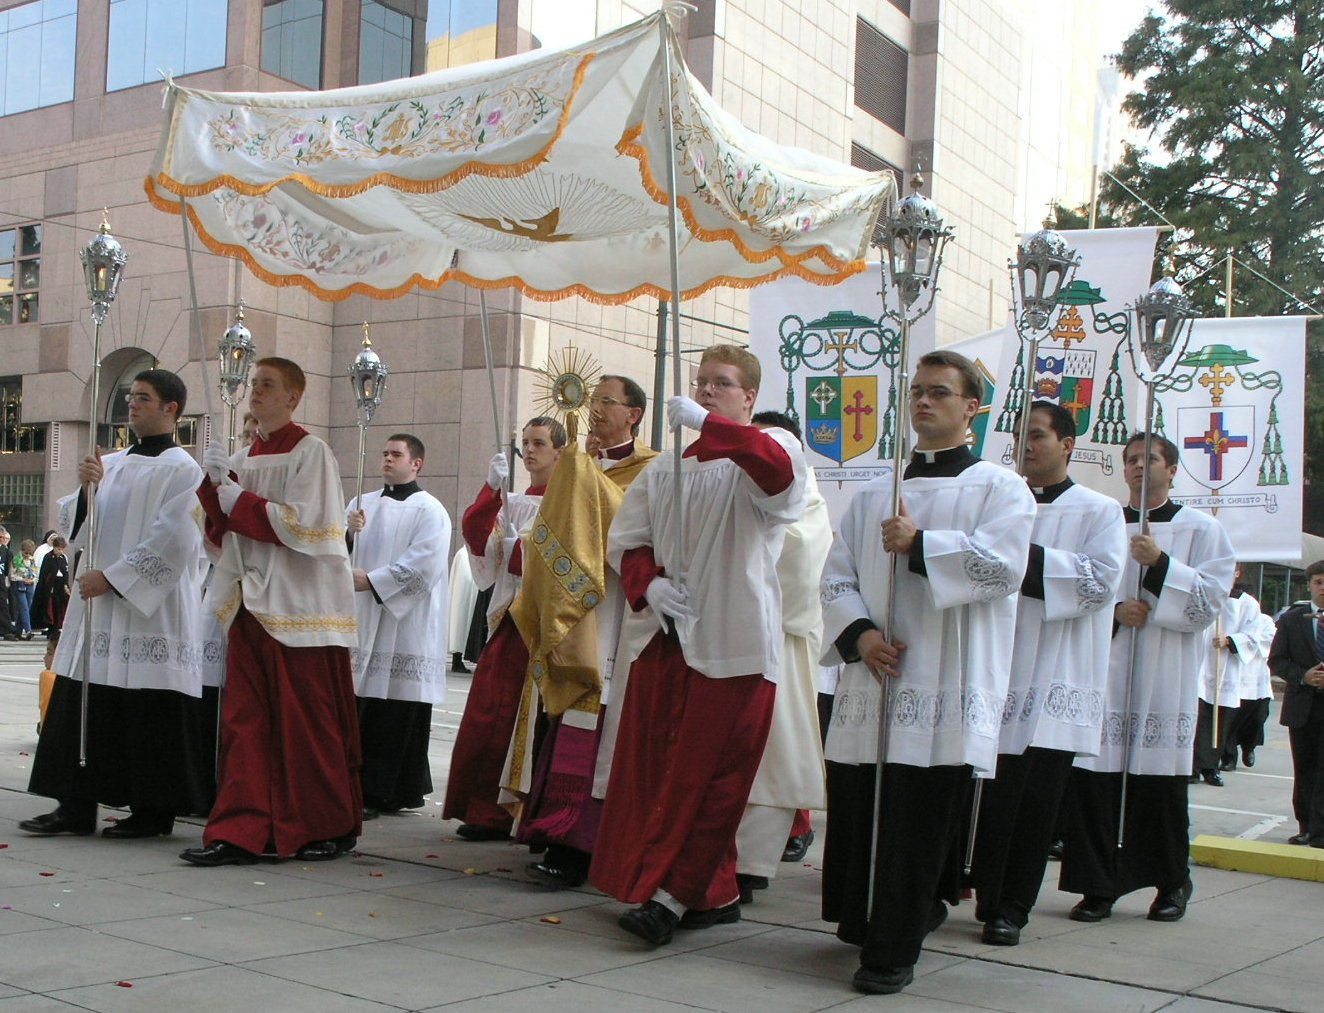 File:Blessed Sacrament procession, First Annual ...